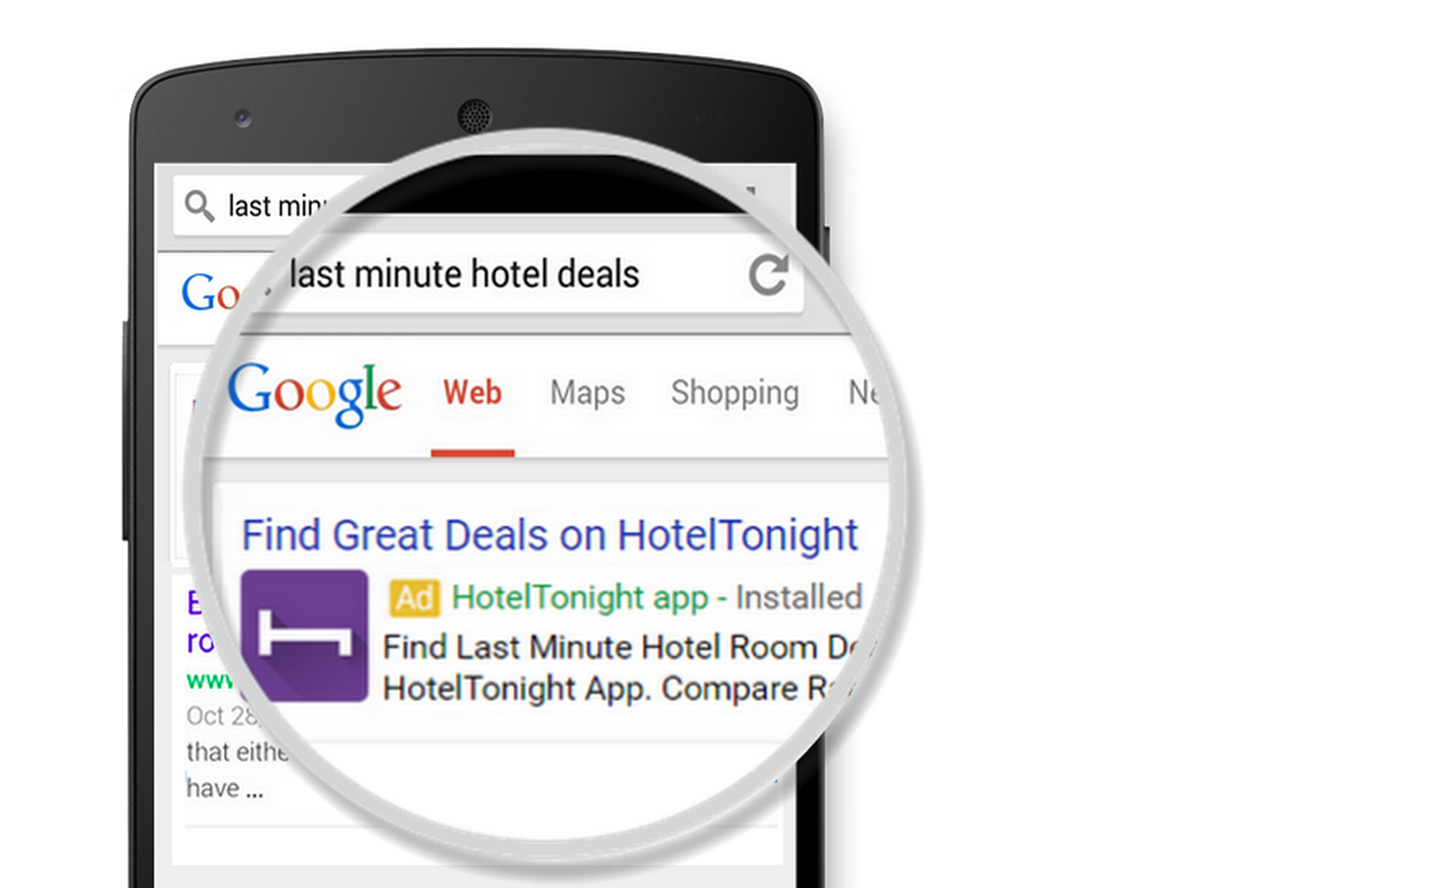 deep-links-within-mobile-app-engagement-search-ads (2)